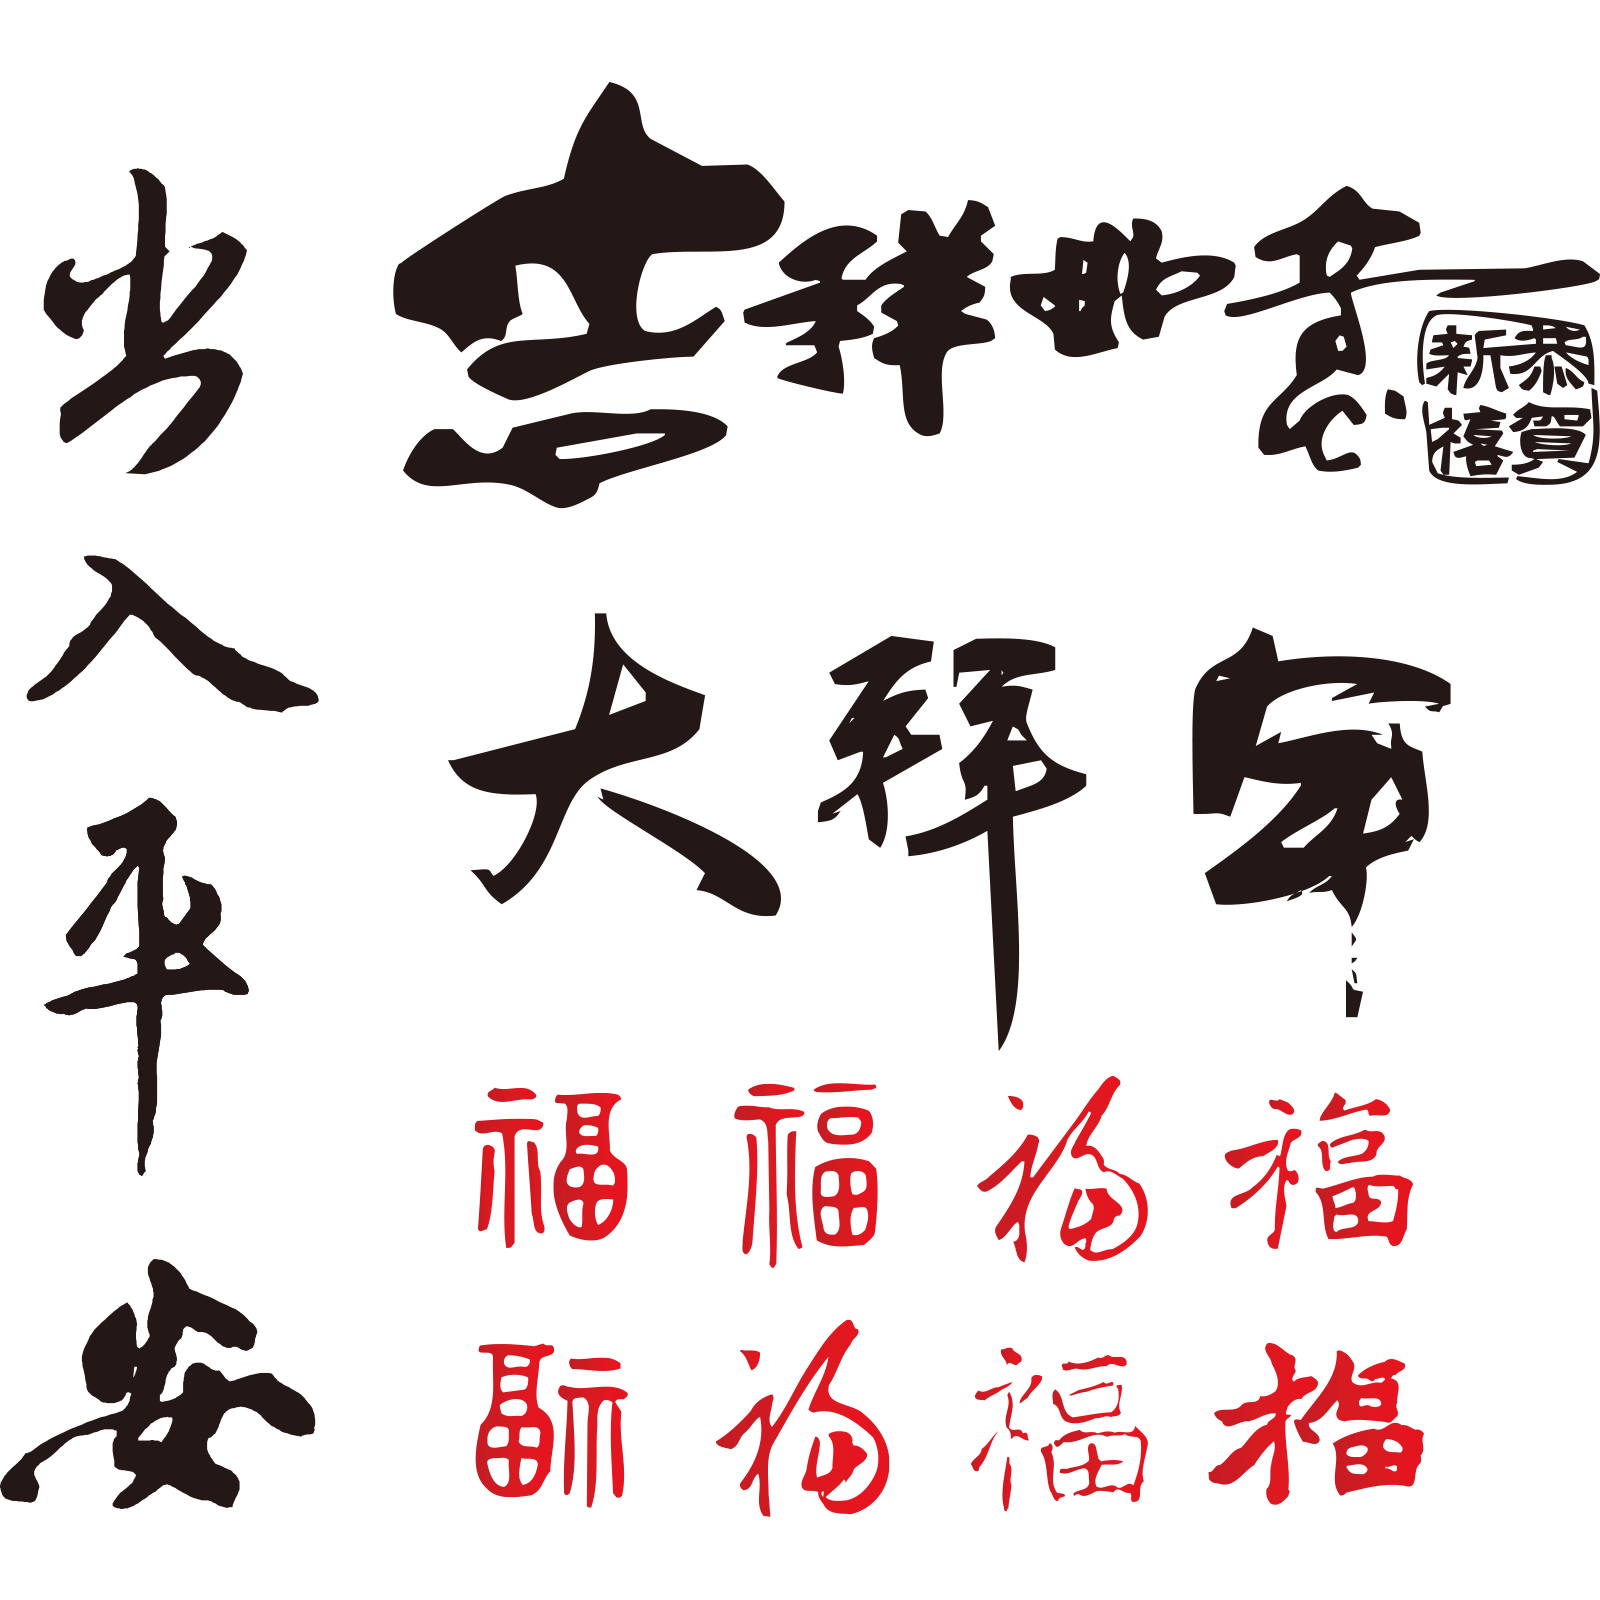 Ox vector chinese new year. Qingming festival calligraphy word